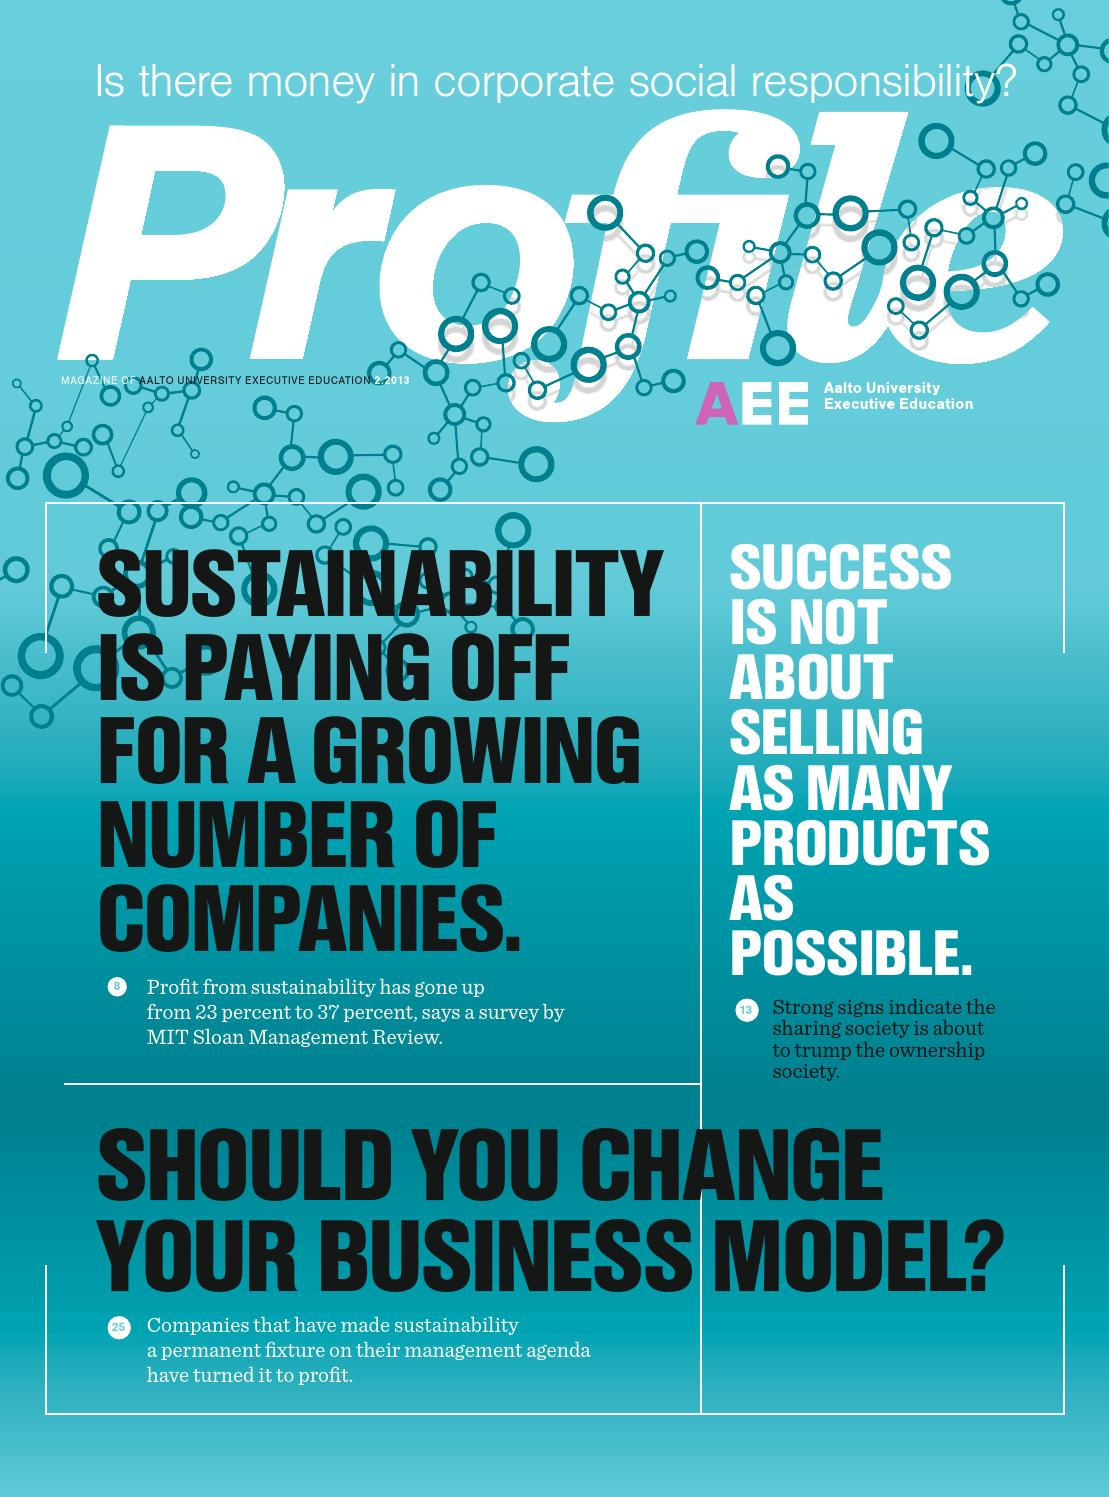 csr magazine essays Social responsibility essays - corporate social responsibility and the consumer.